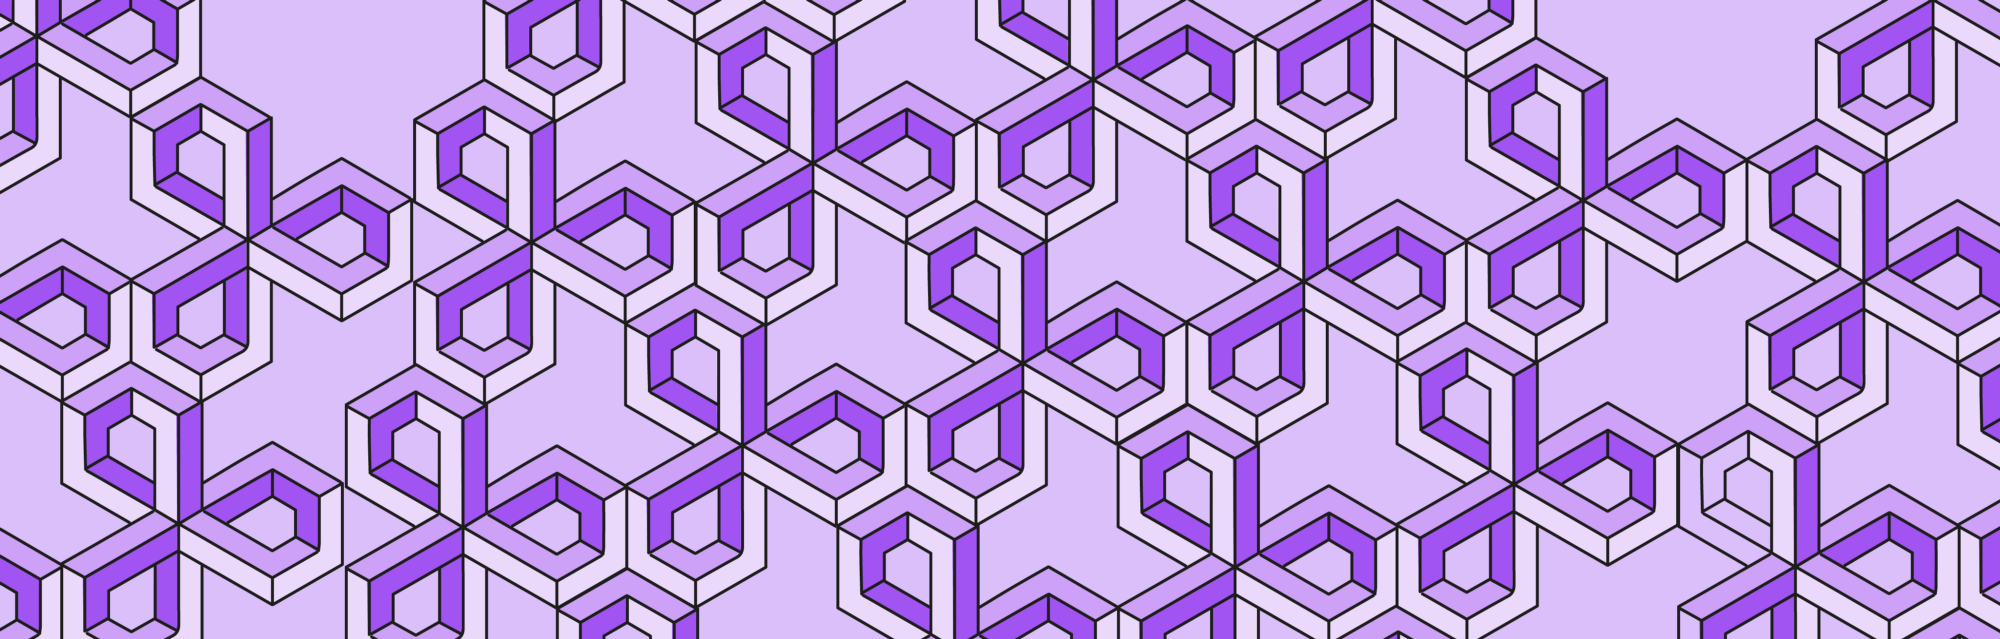 Pattern in shades of purple that plays with optical illussions